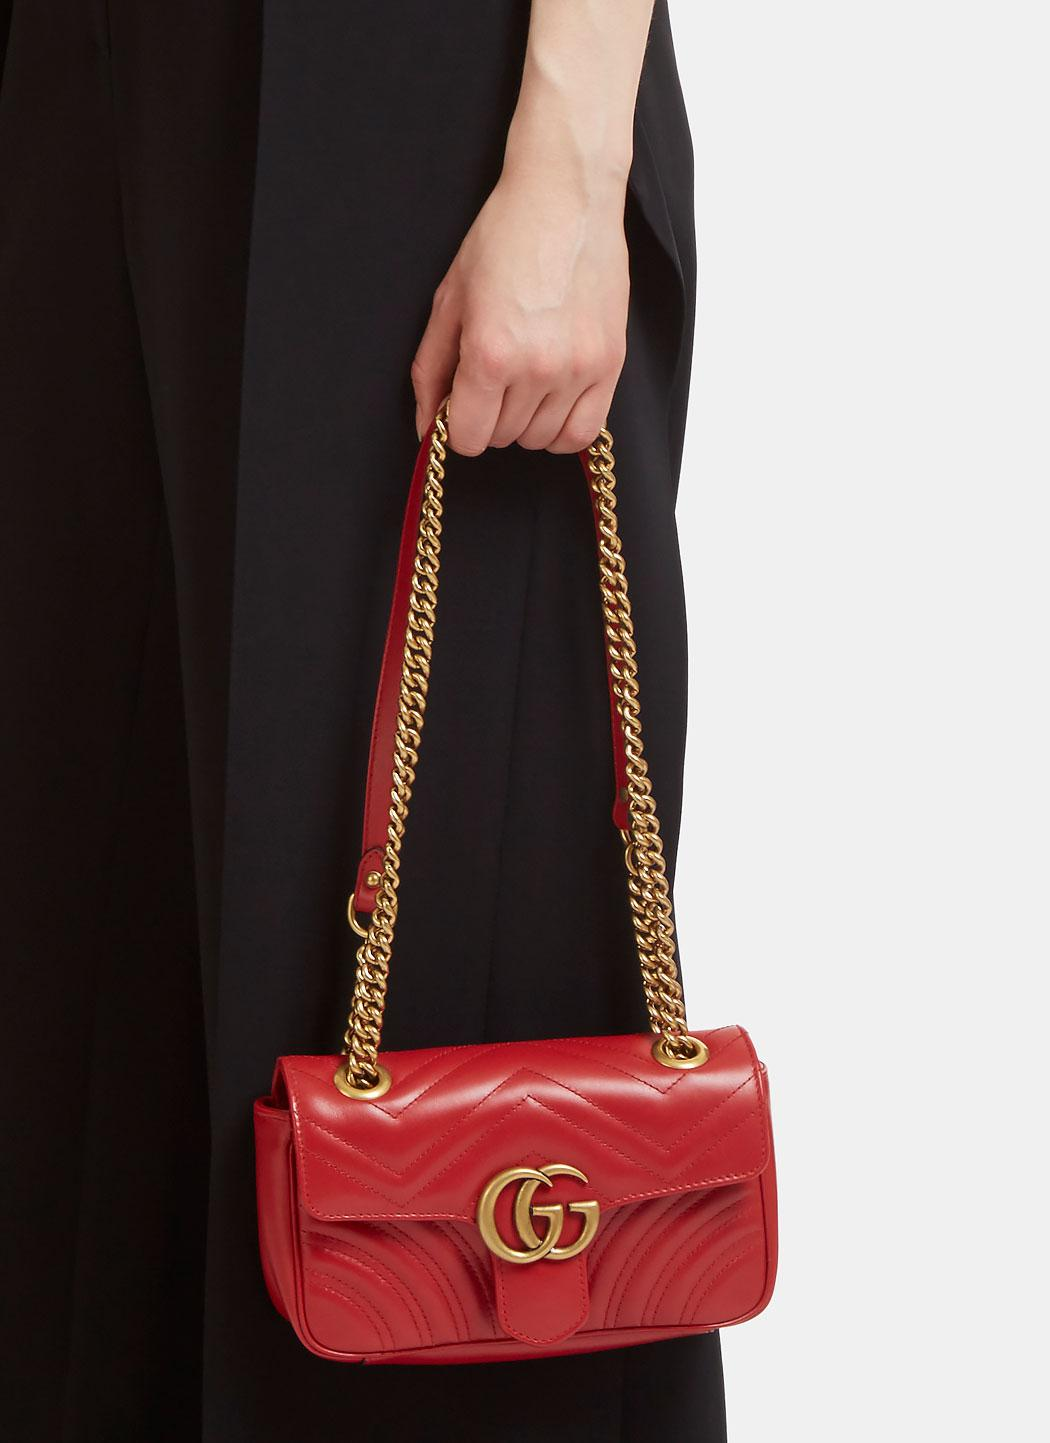 c7400015ba59 Gucci Gg Marmont Matelassé Mini Chain Shoulder Bag In Red in Red - Lyst